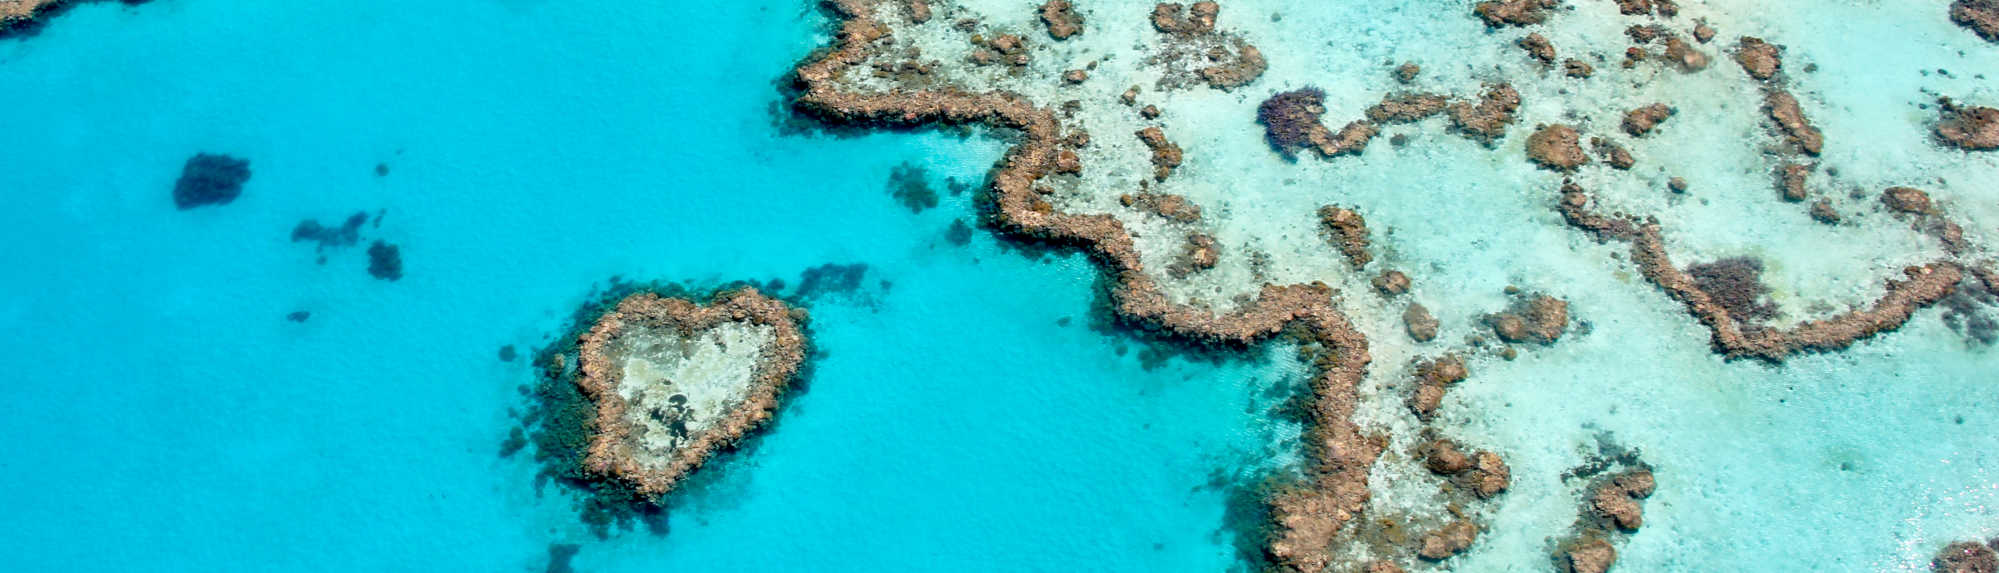 Seeing the Heart Reef in the Whitsundays